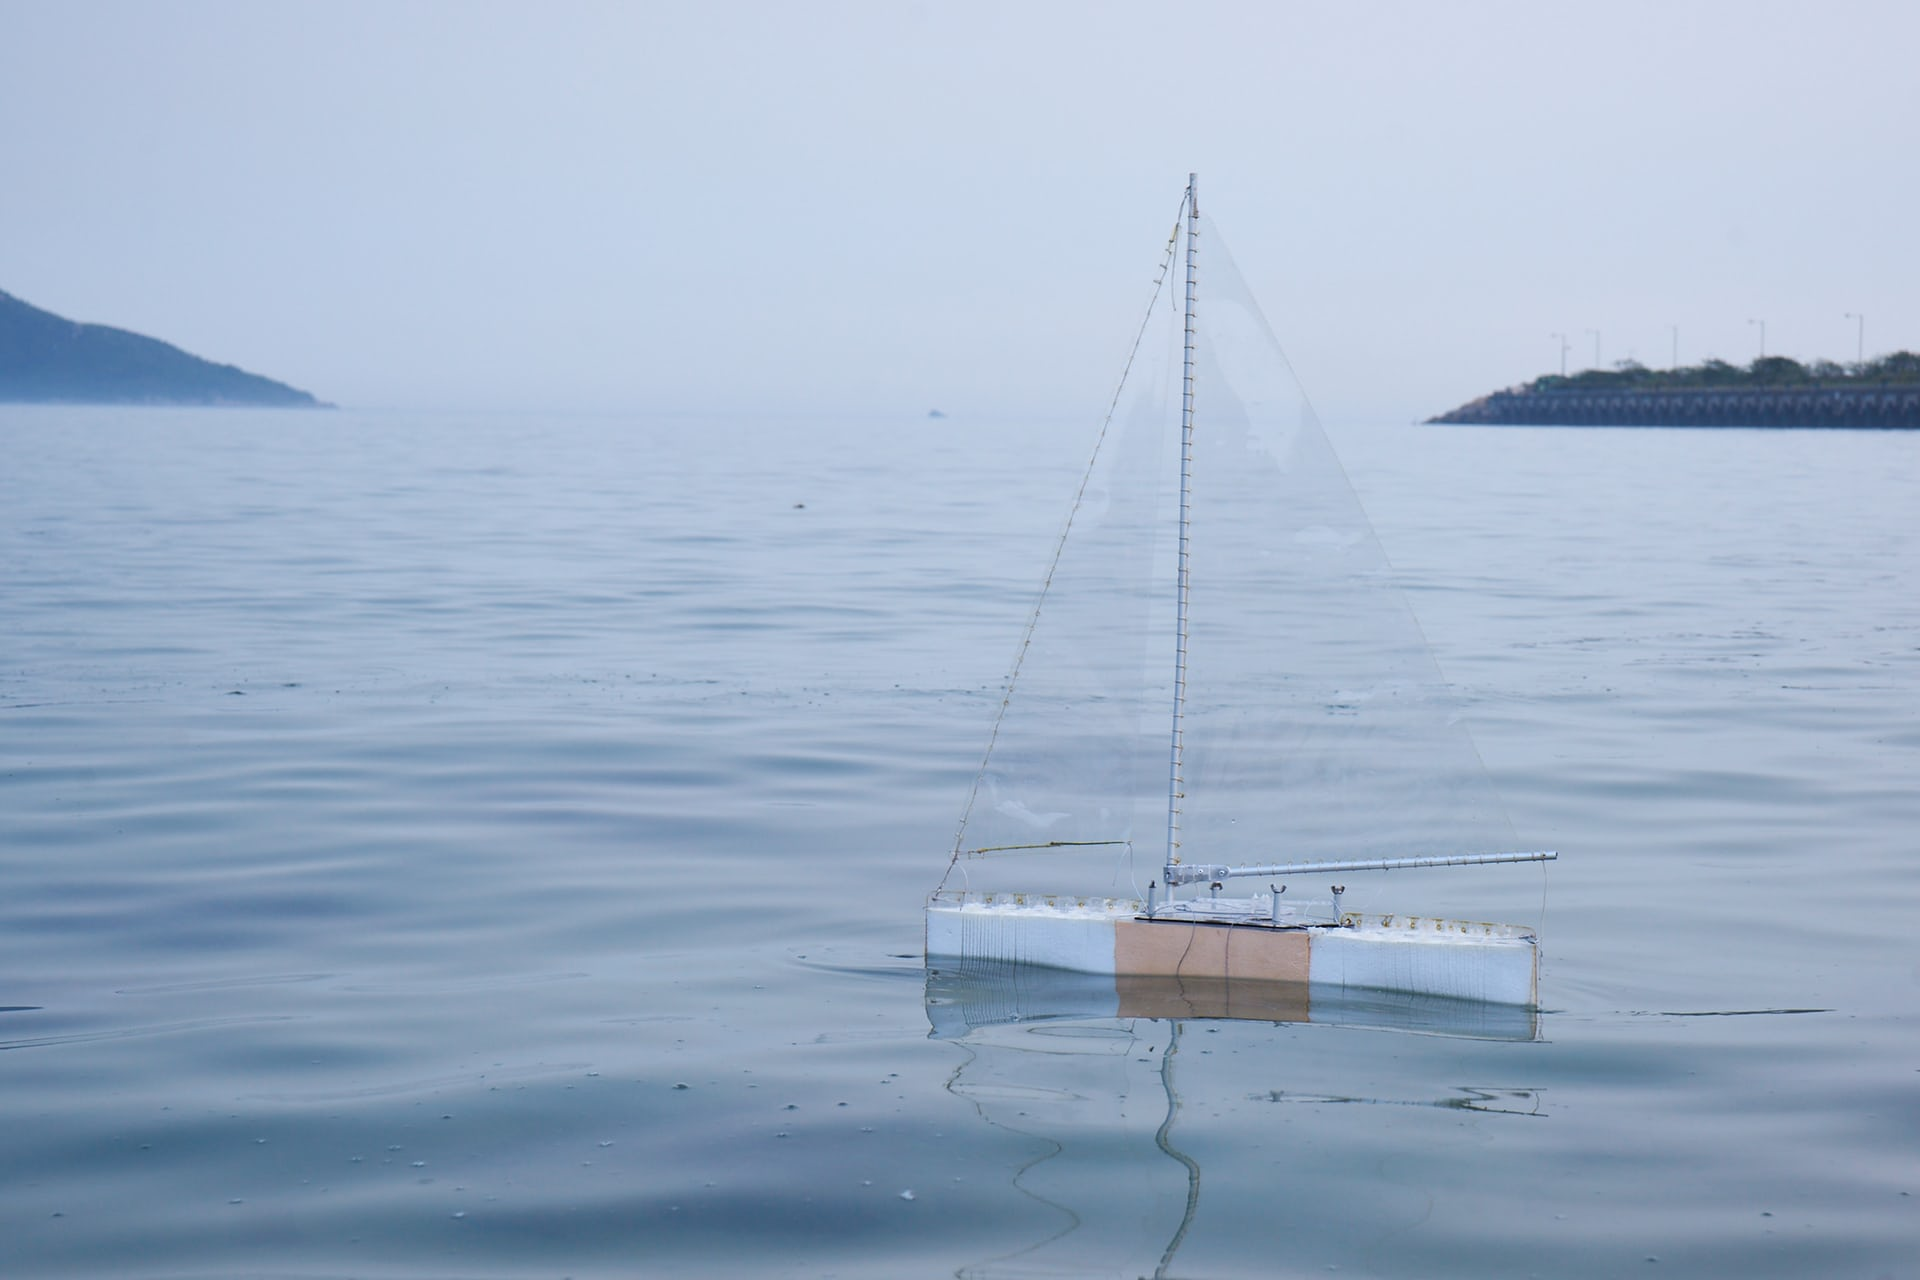 Protei, an autonomous sailing ship that cleans up oil spills, 2014. Photograph: © Scoutbots LTD, Cesar Jung-Harada